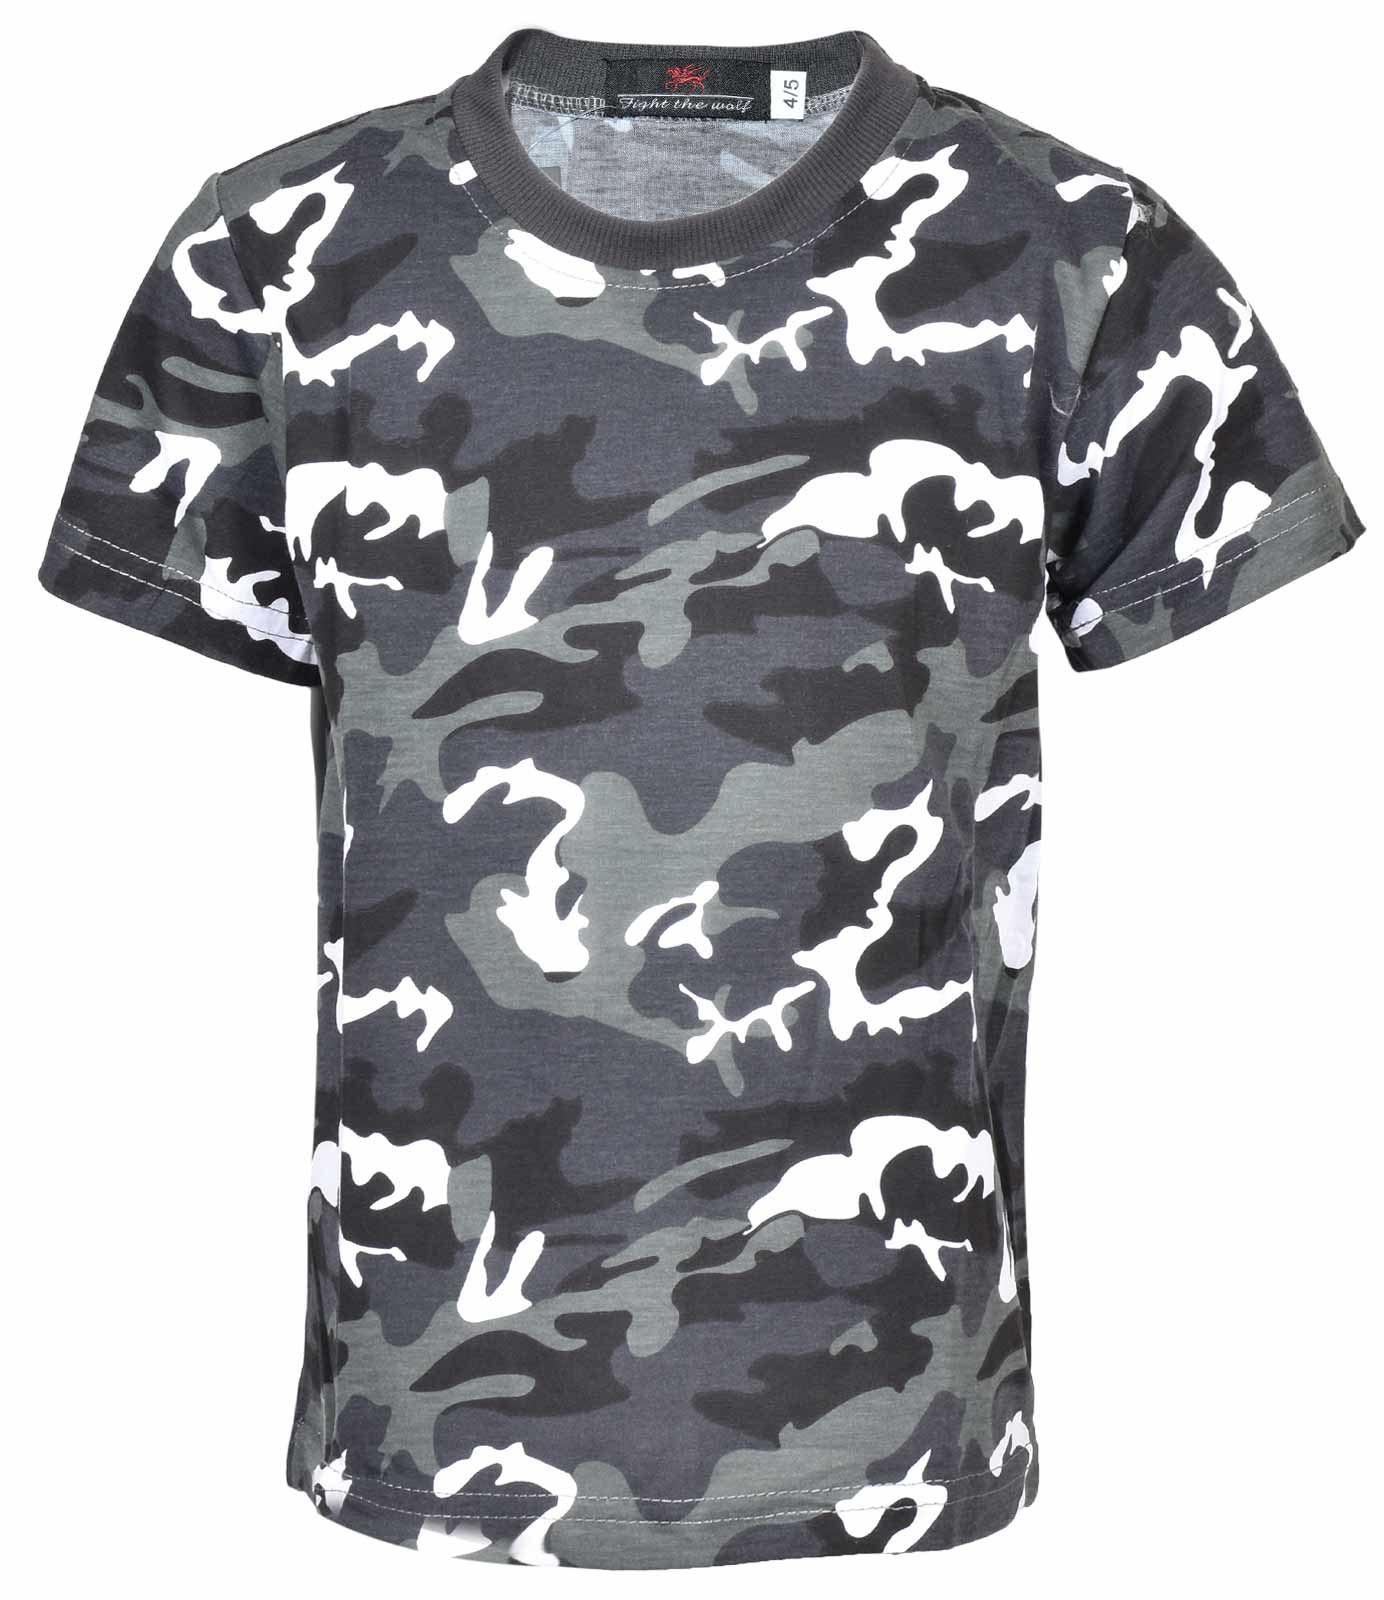 ARMY MTP // WOODLAND CAMO // 9-11 YEARS KIDS BOYS CAMOUFLAGE T-SHIRT BNWT